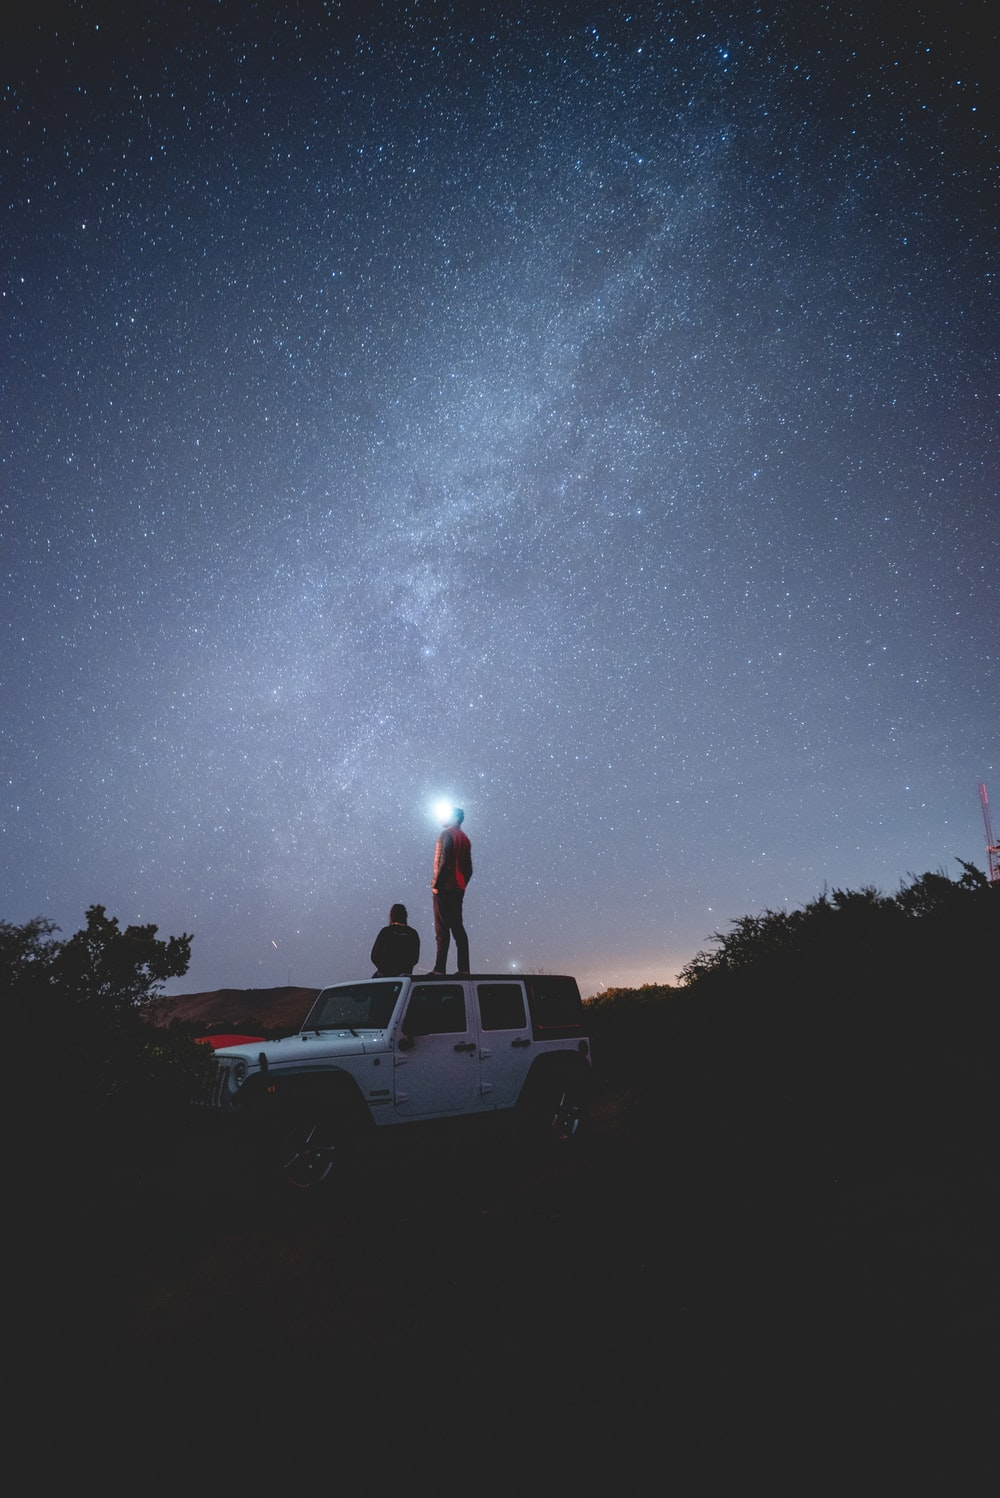 two person on white vehicle at night time